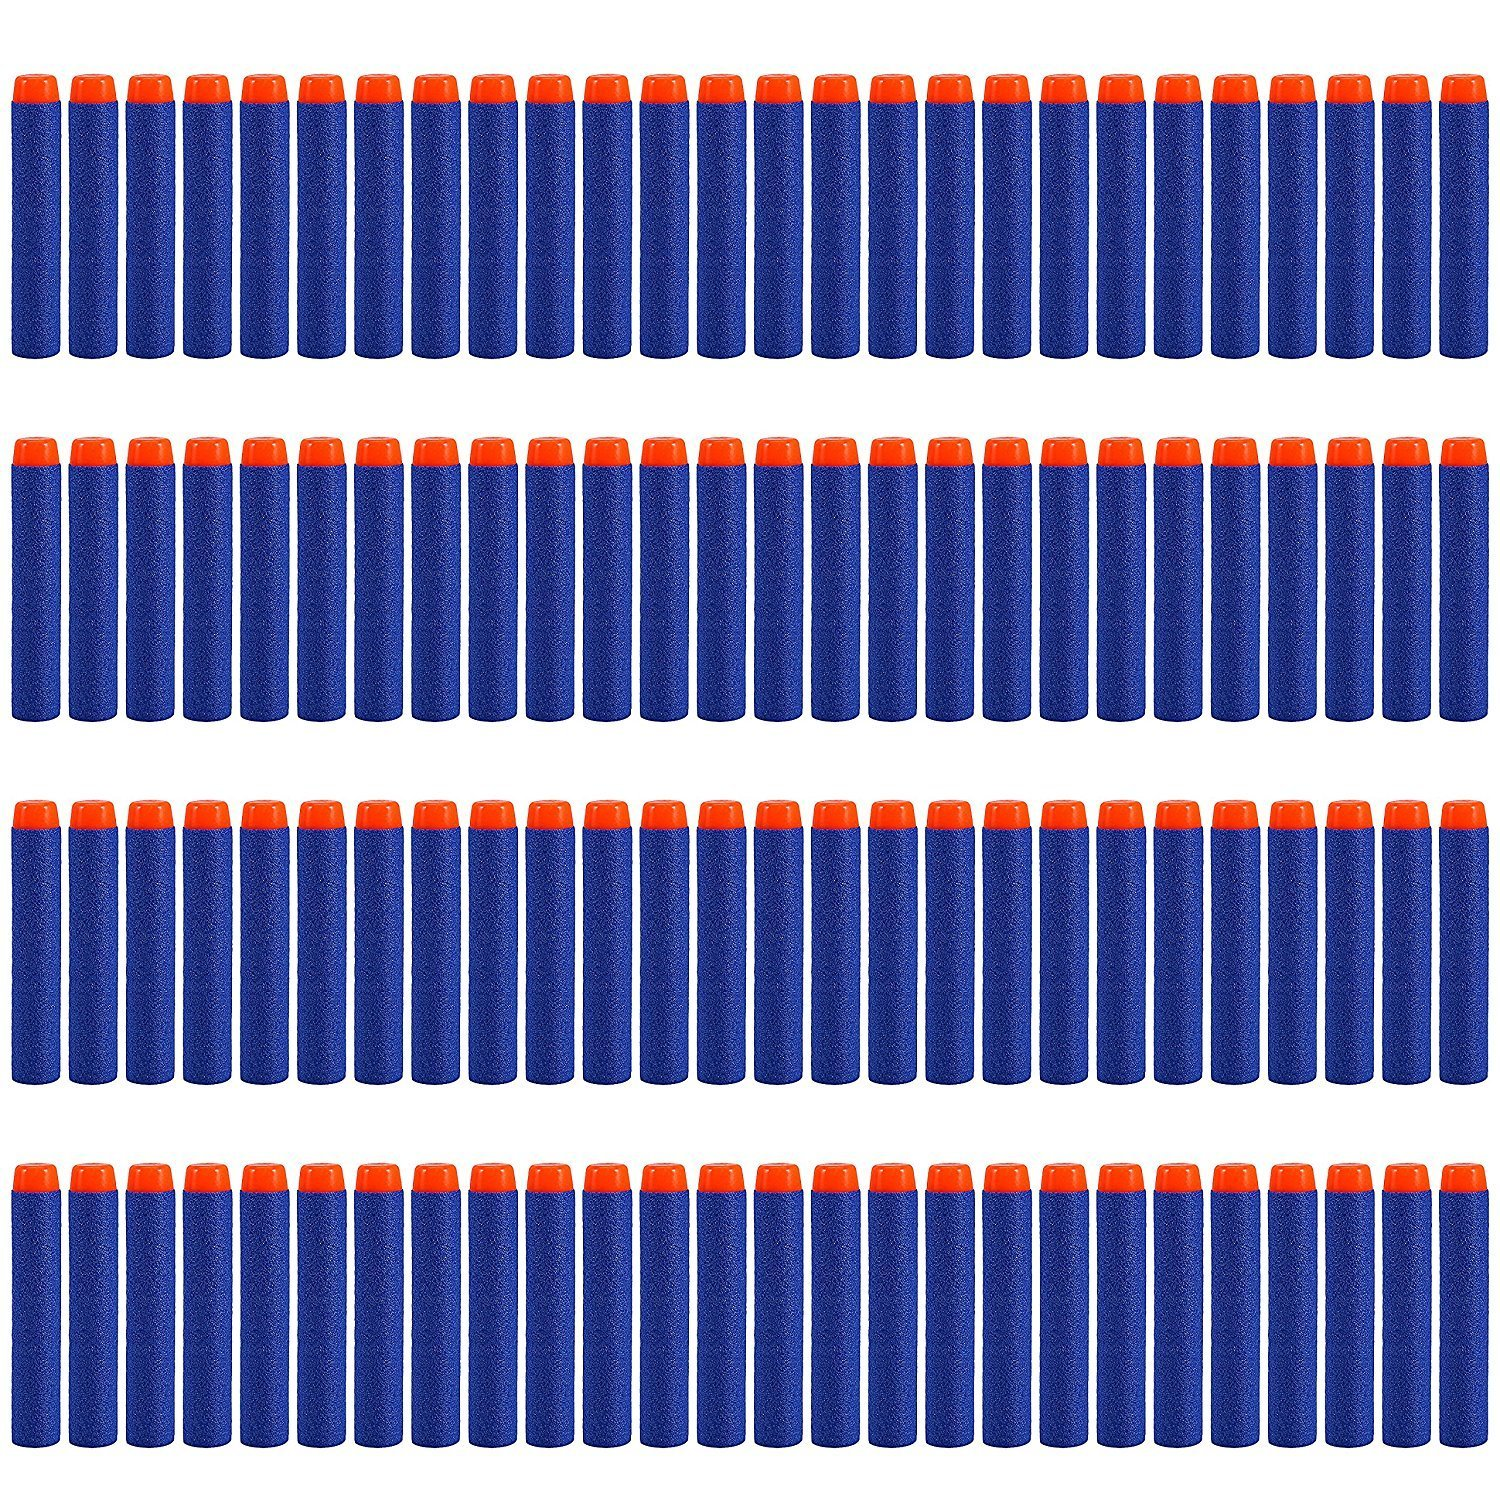 Dart Bullet Pack for Nerf N-Strike Guns Blaster Toys (1000 Darts)